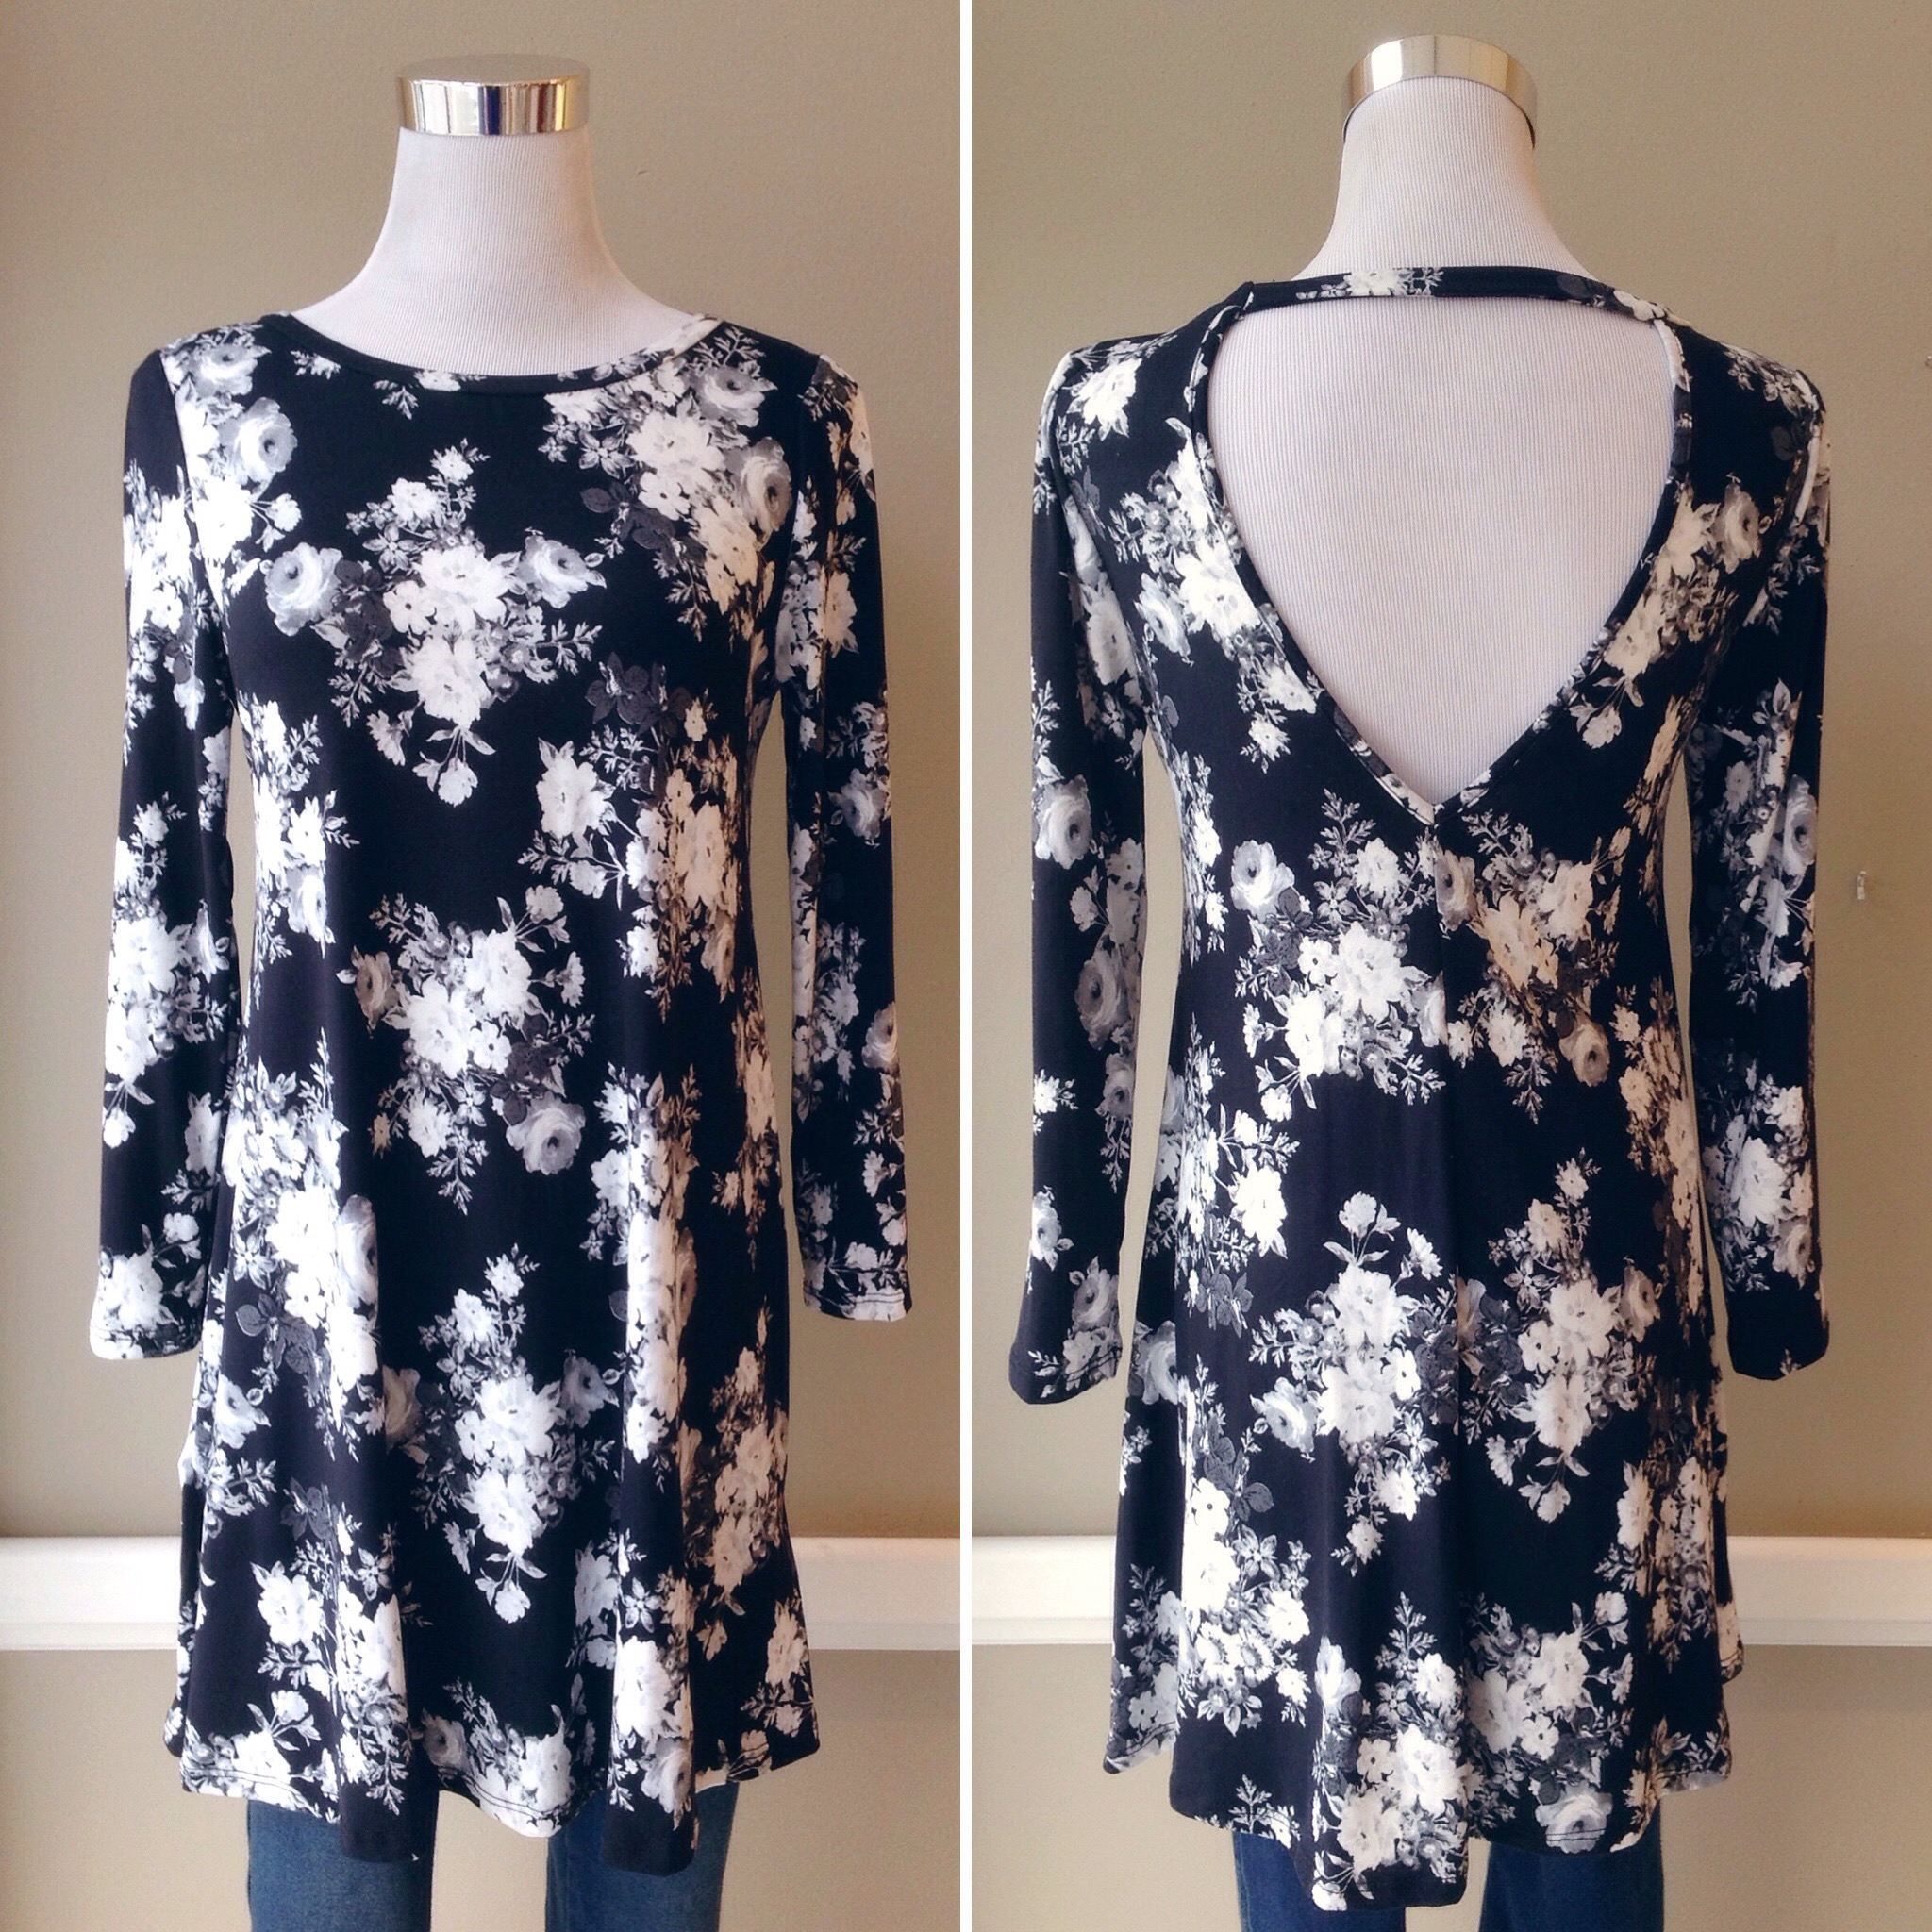 Soft floral knit tunic with deep v back and band detail, $34